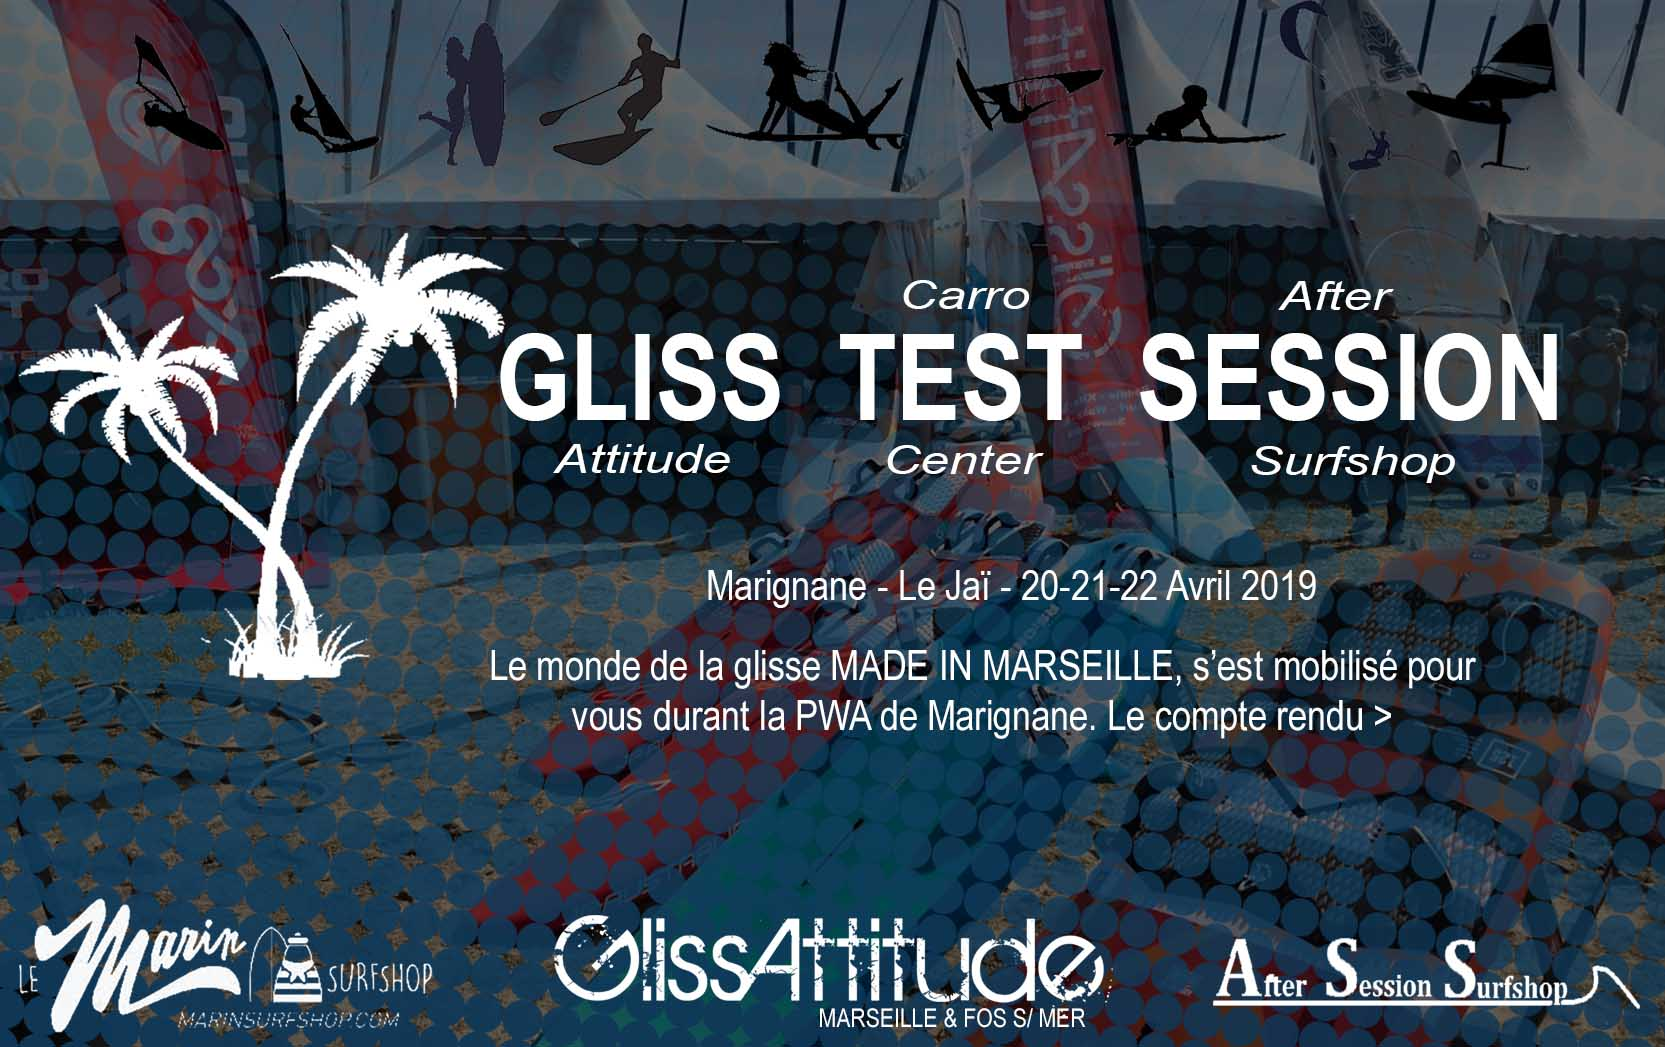 evenement bliss test session